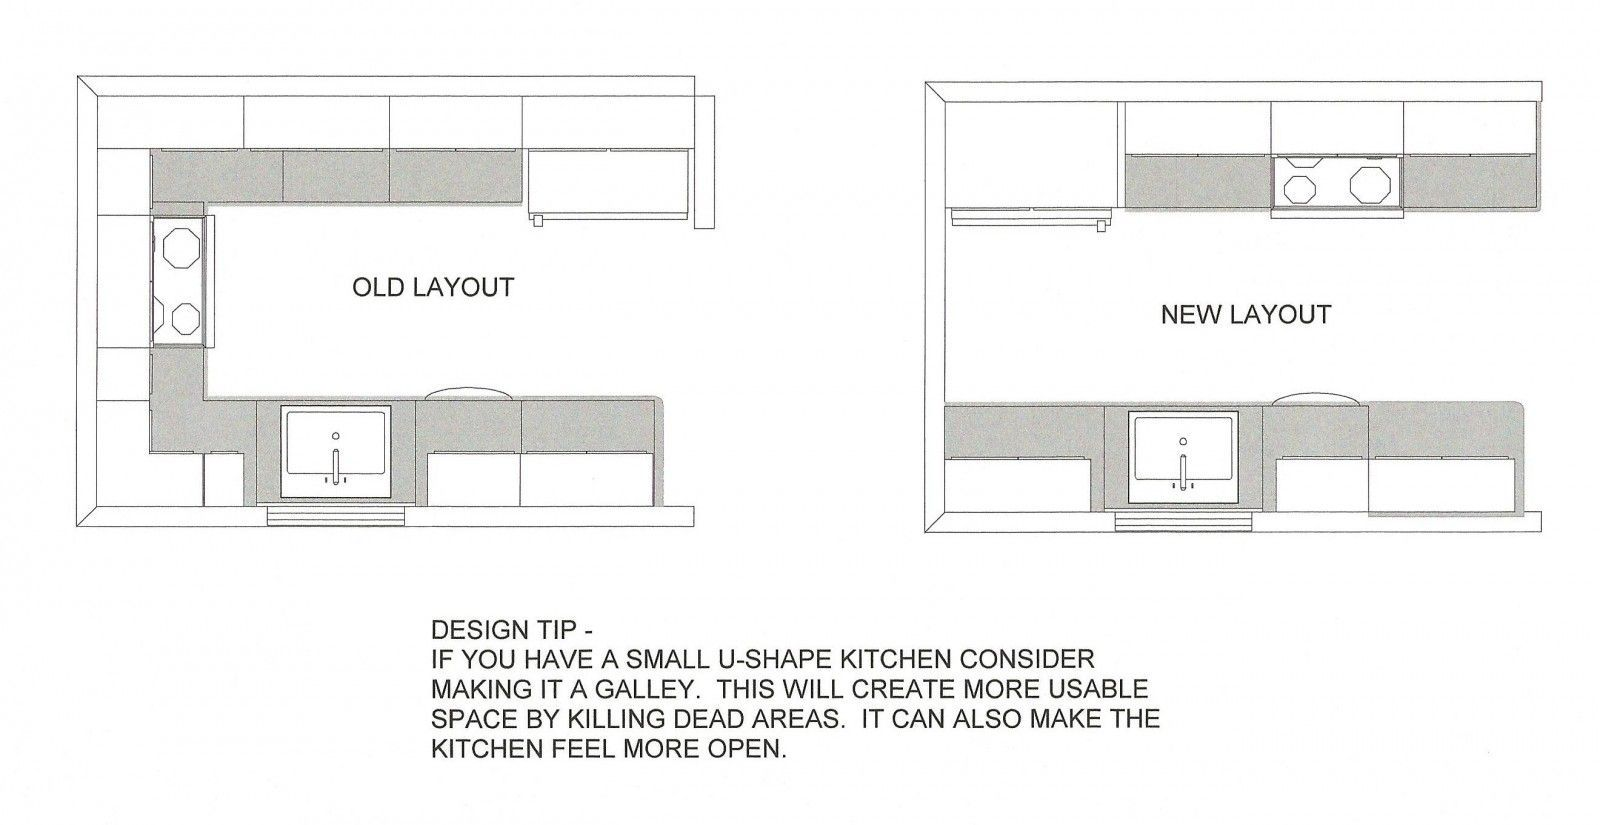 detailed all type kitchen floor plans review galley option for tiny kitchen - Kitchen Plan Design